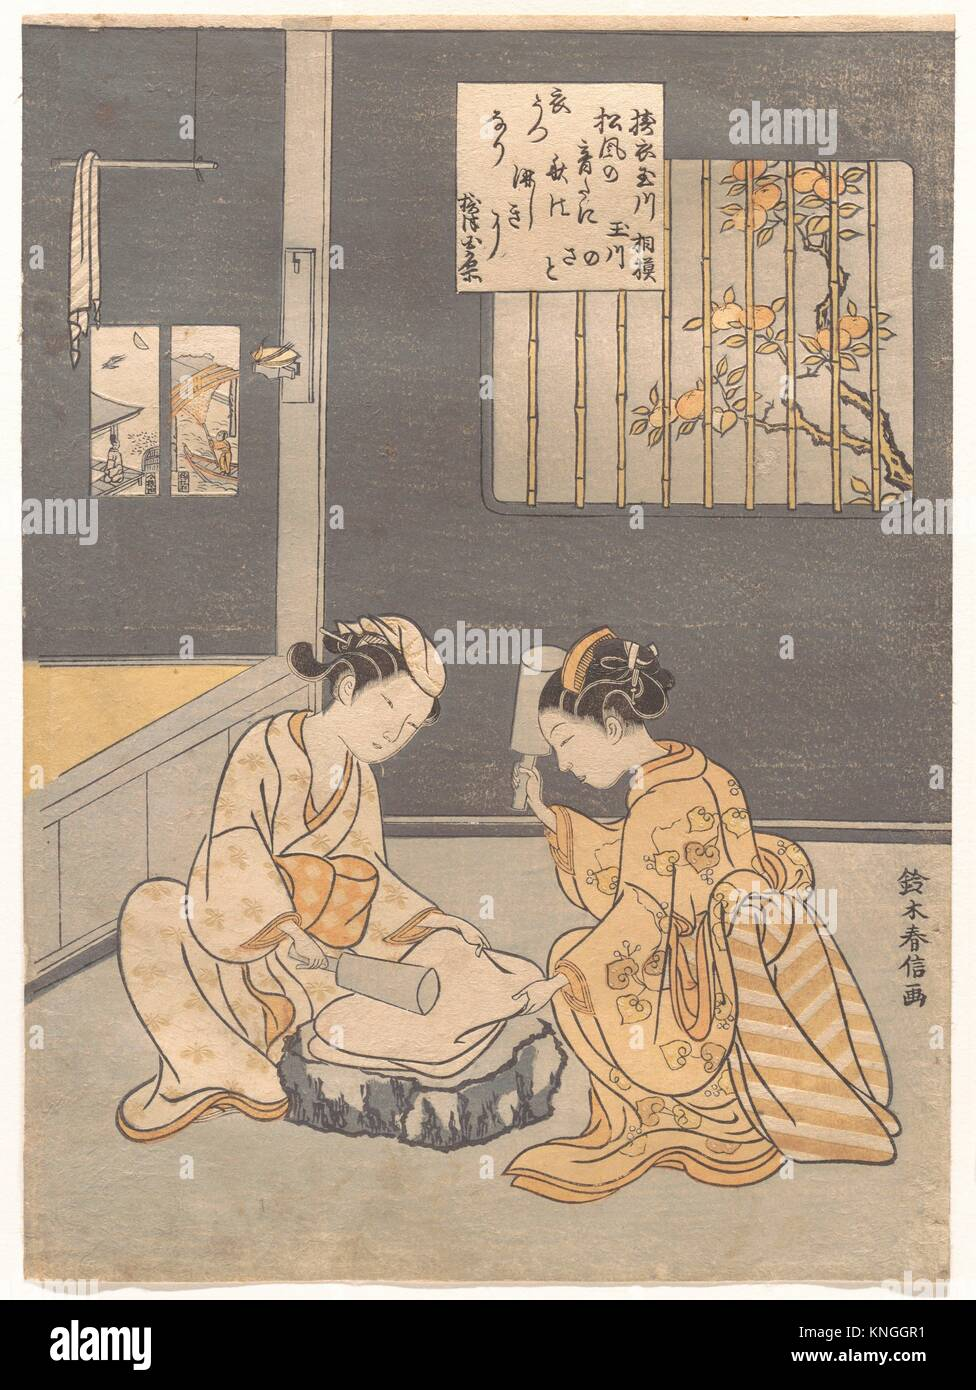 Koromo Uchi Tamagawa/Fulling Cloth at the Jewel River (Kinuta no Tamagawa). Artist: Suzuki Harunobu (Japanese, 1725 - Stock Image